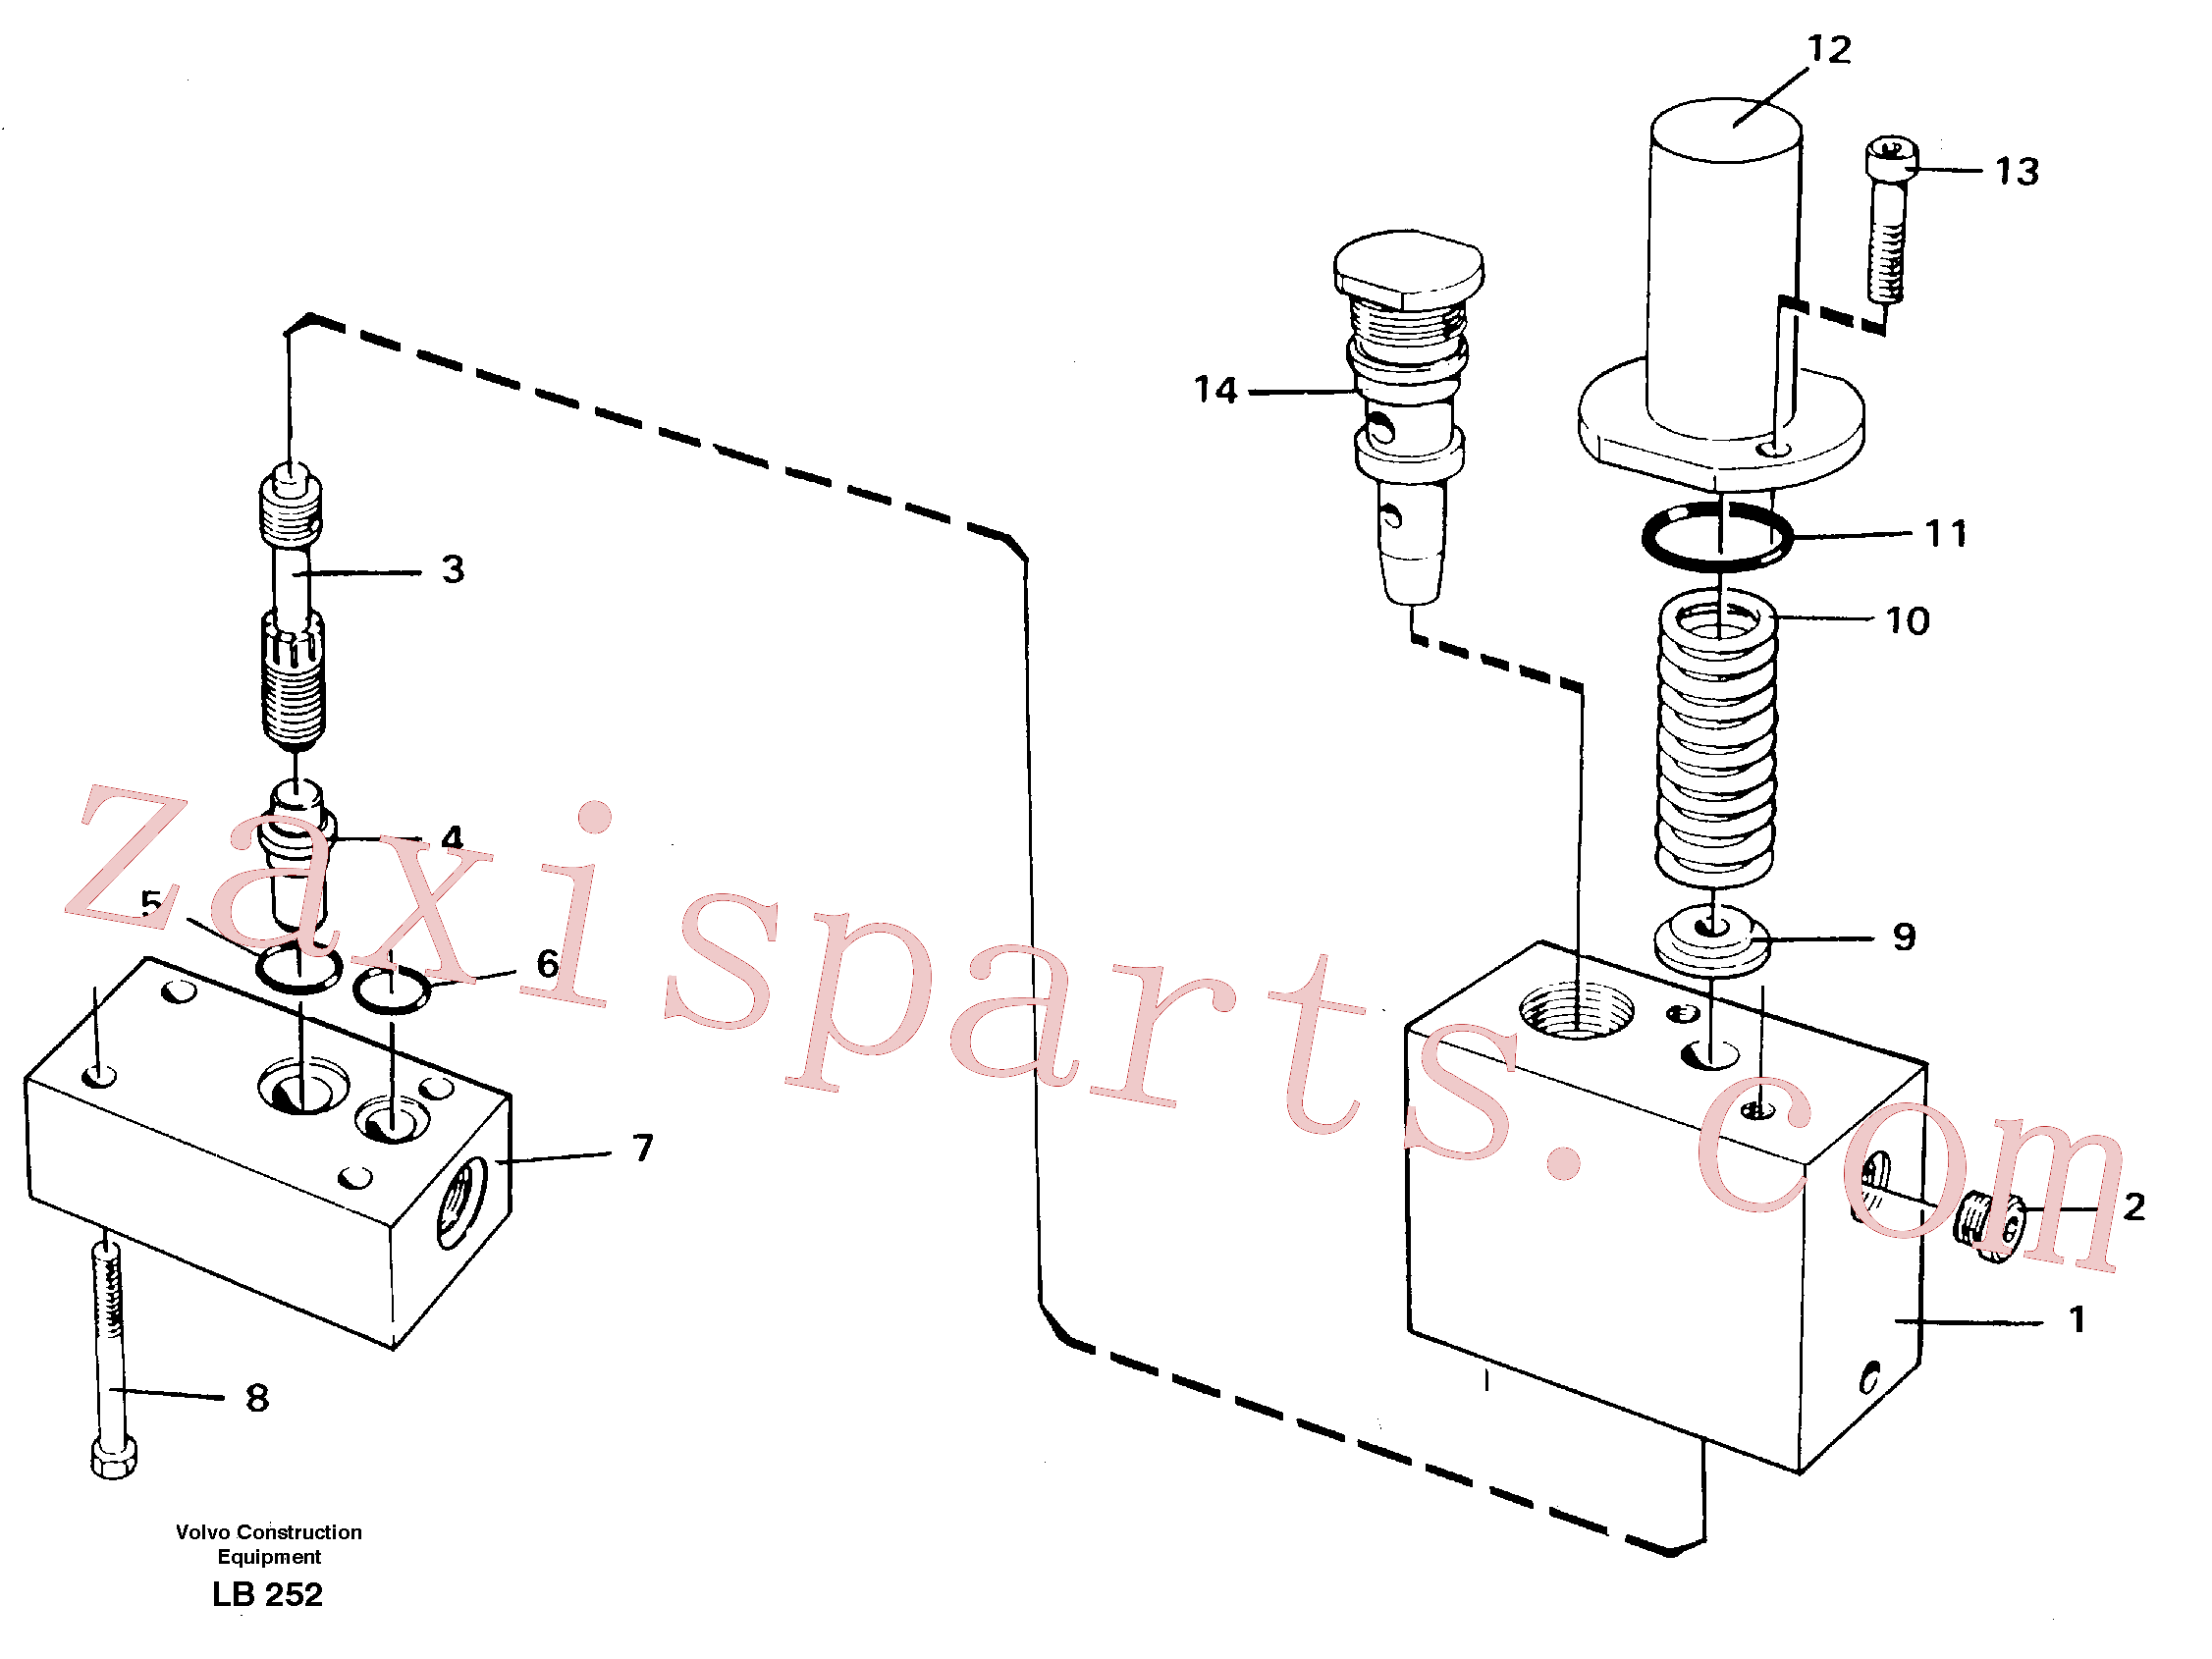 VOE14054984 for Volvo Thermostatic valve(LB252 assembly)